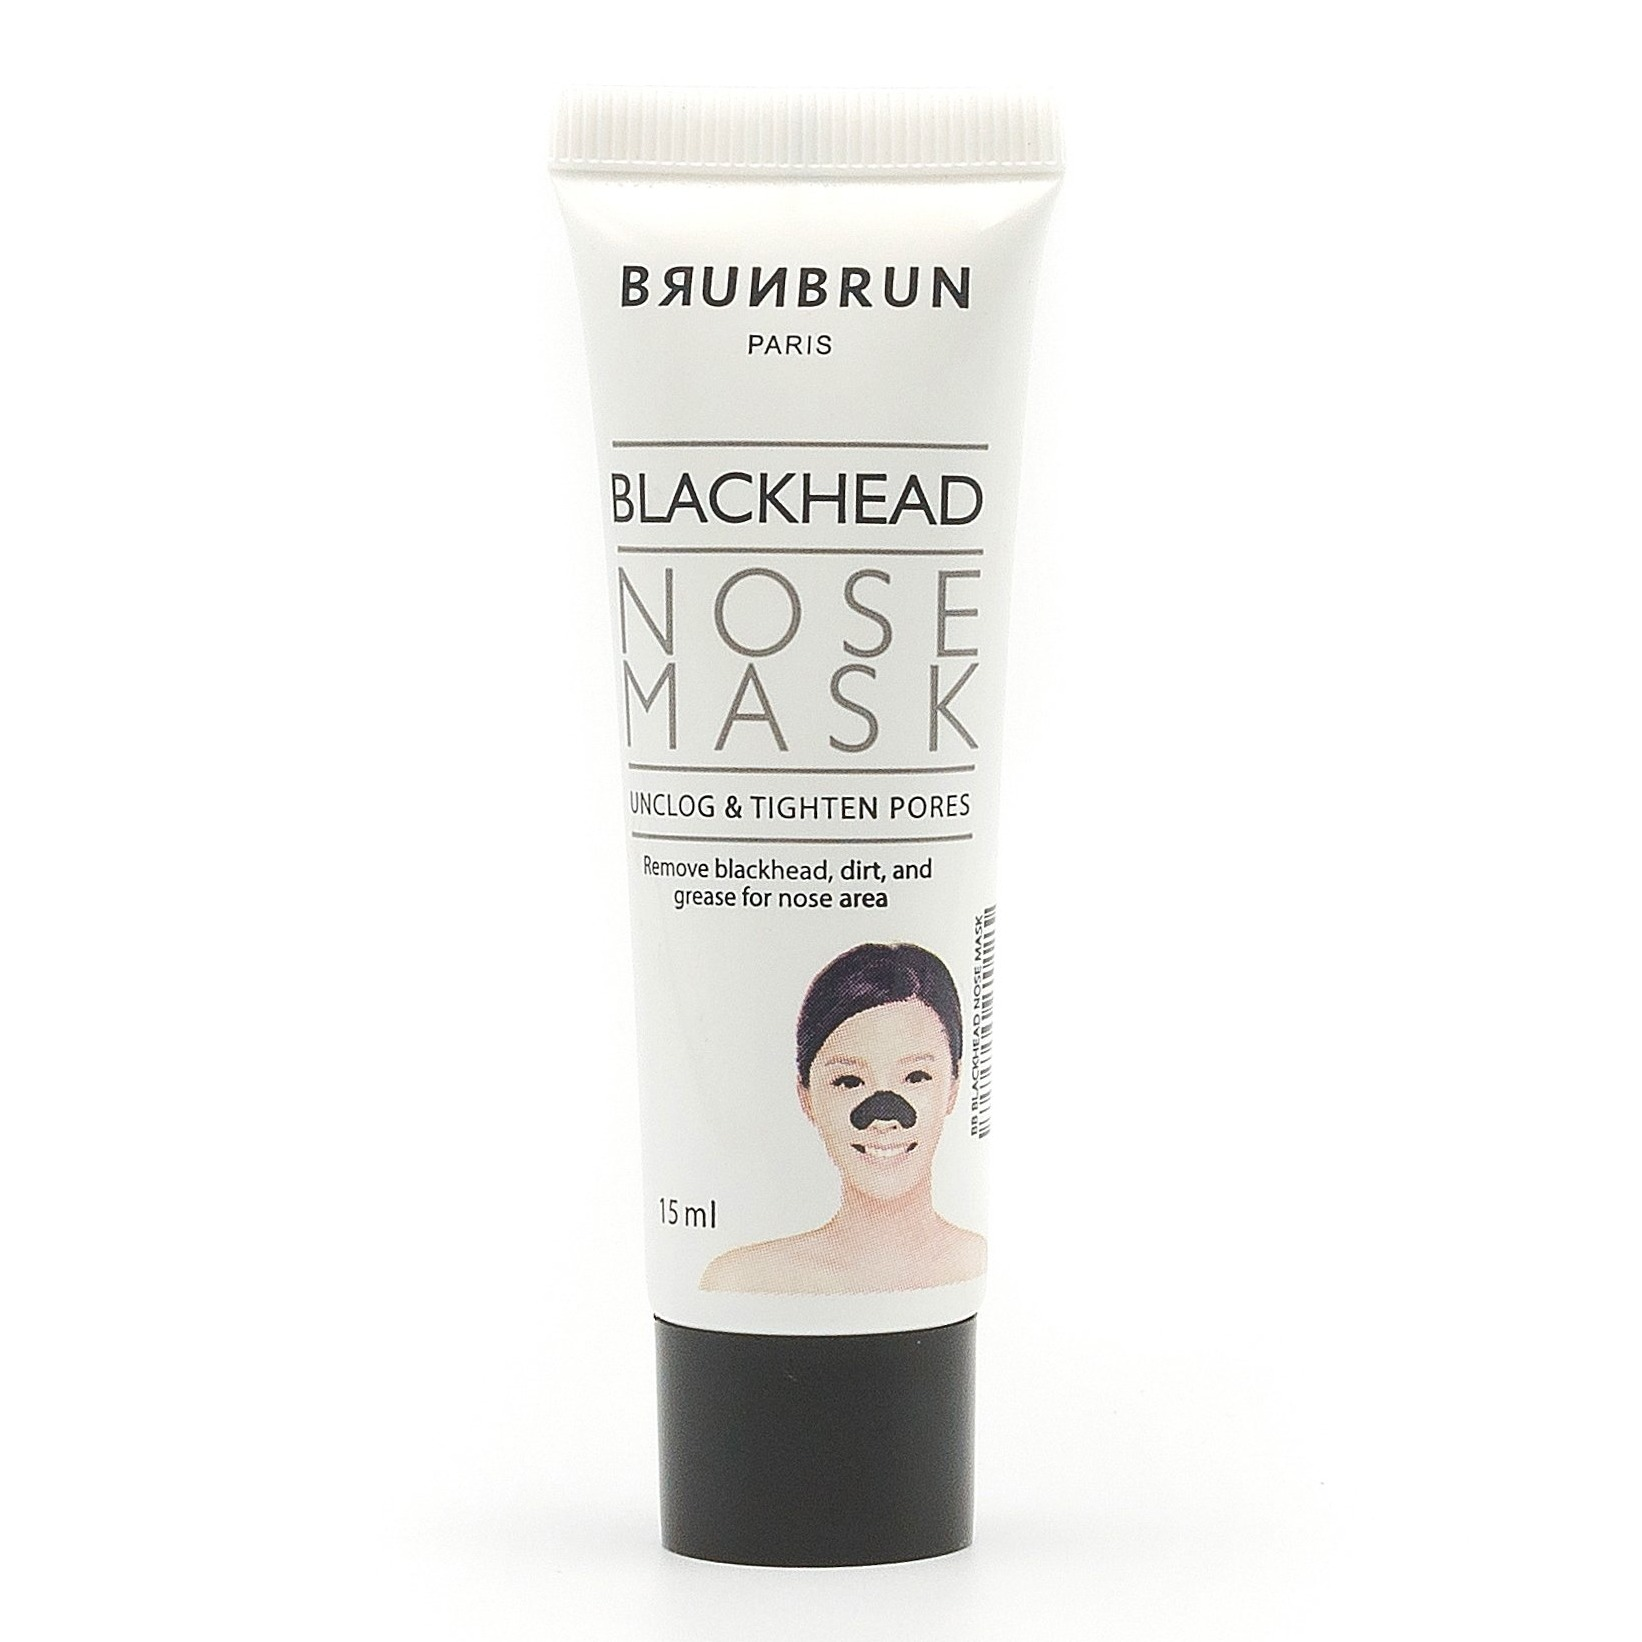 BrunBrun Paris Blackhead Nose Mask